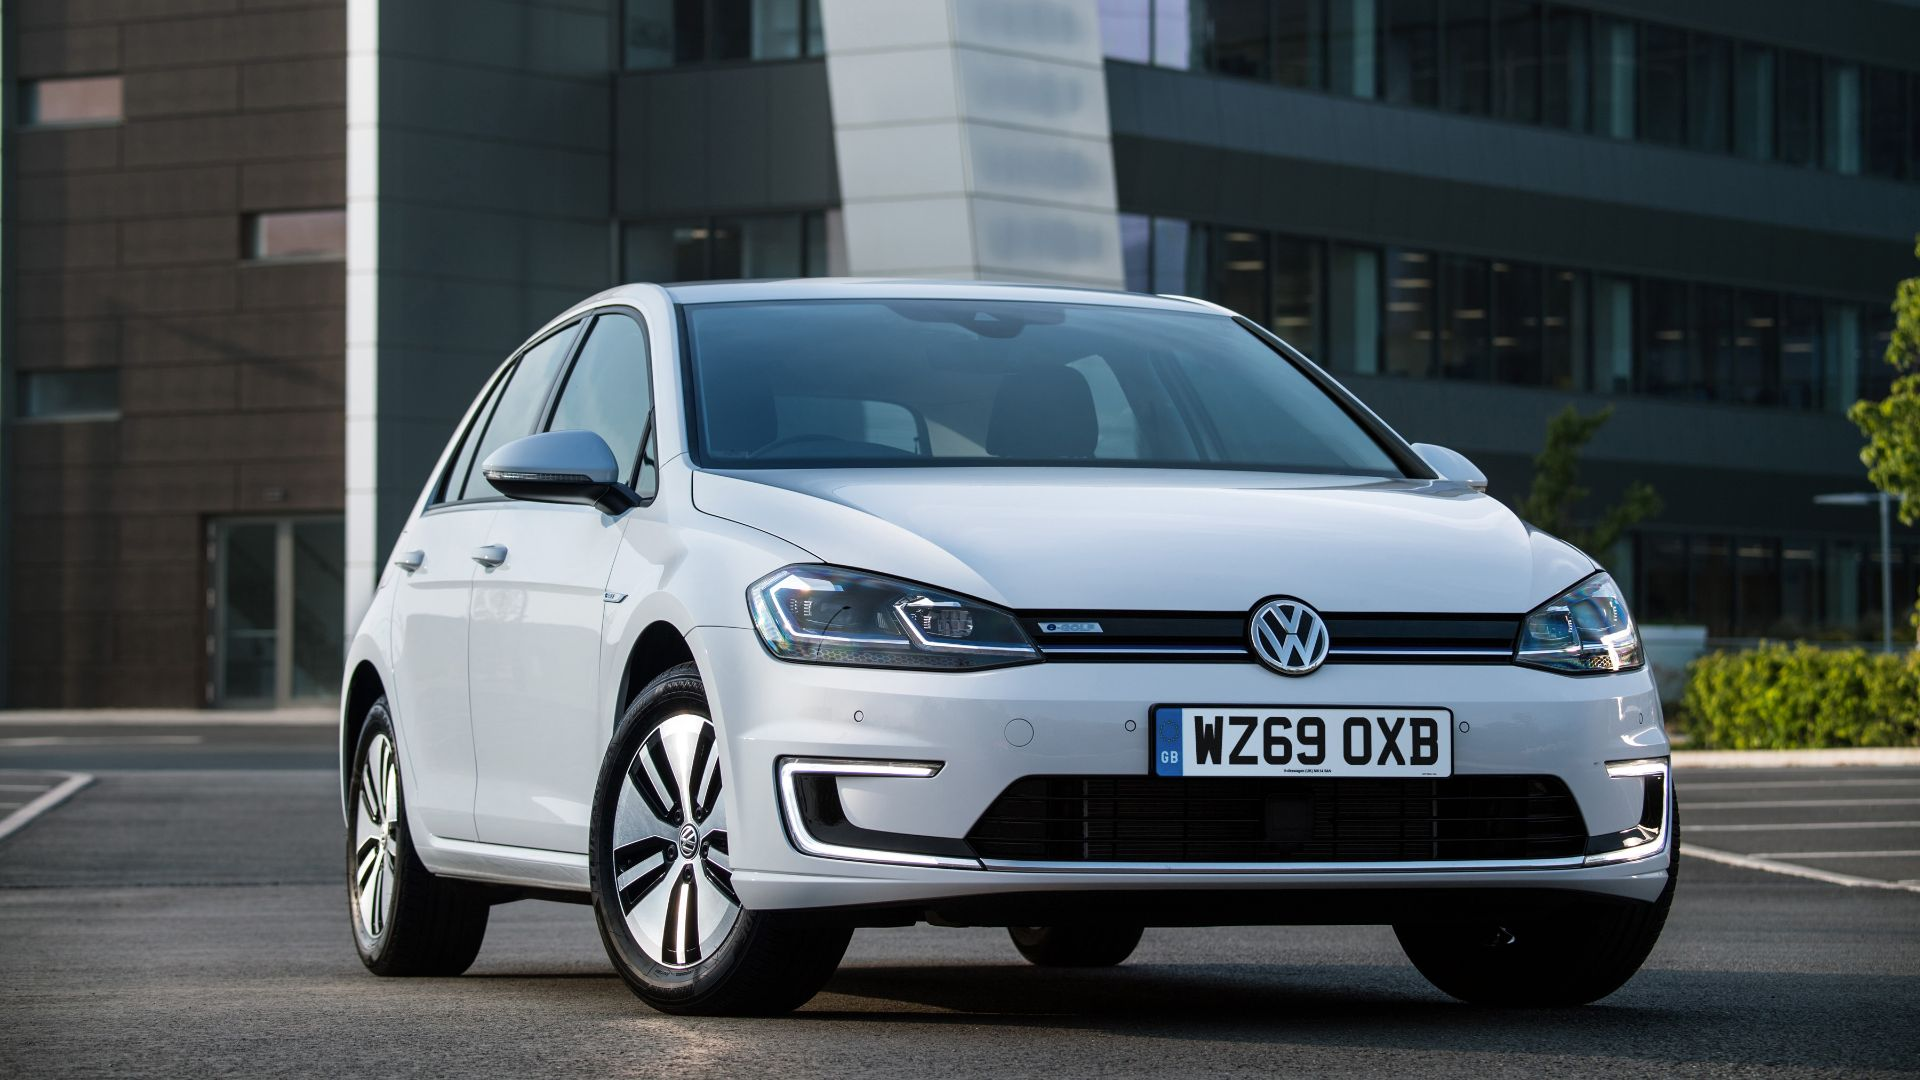 Volkswagen cuts price of e-Golf